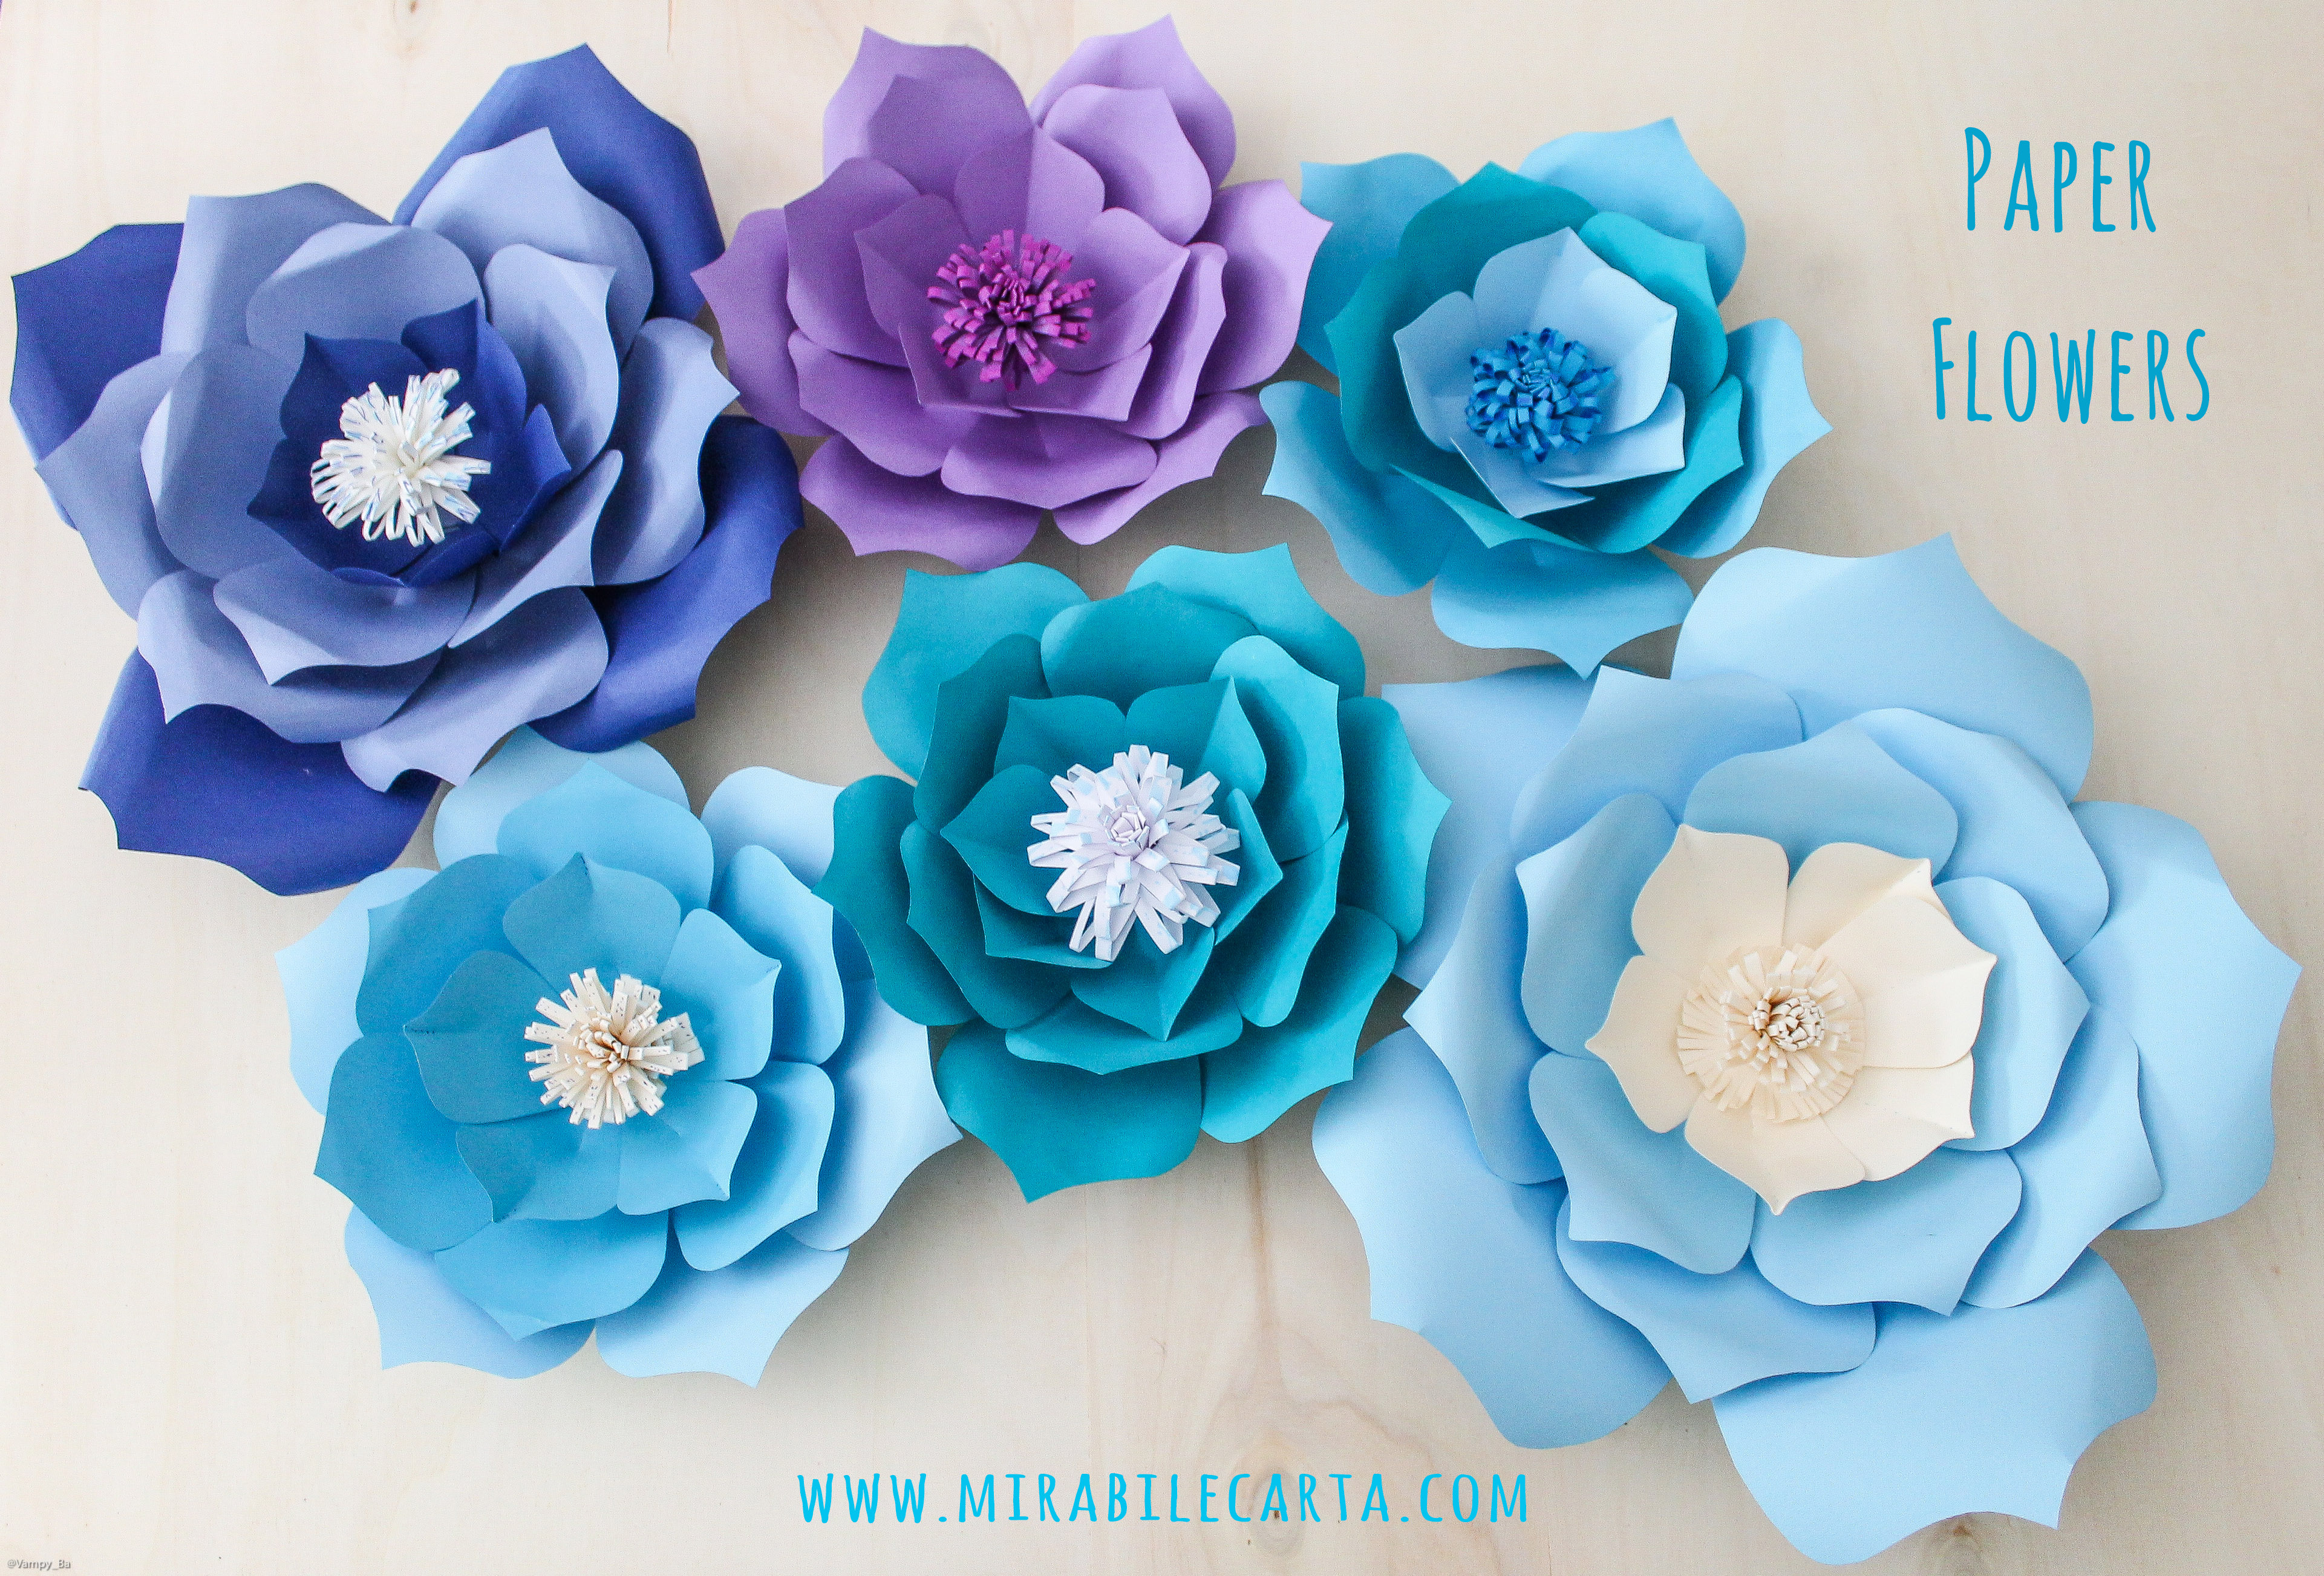 giantpaperflowers_mirabilecarta23 copia.jpg